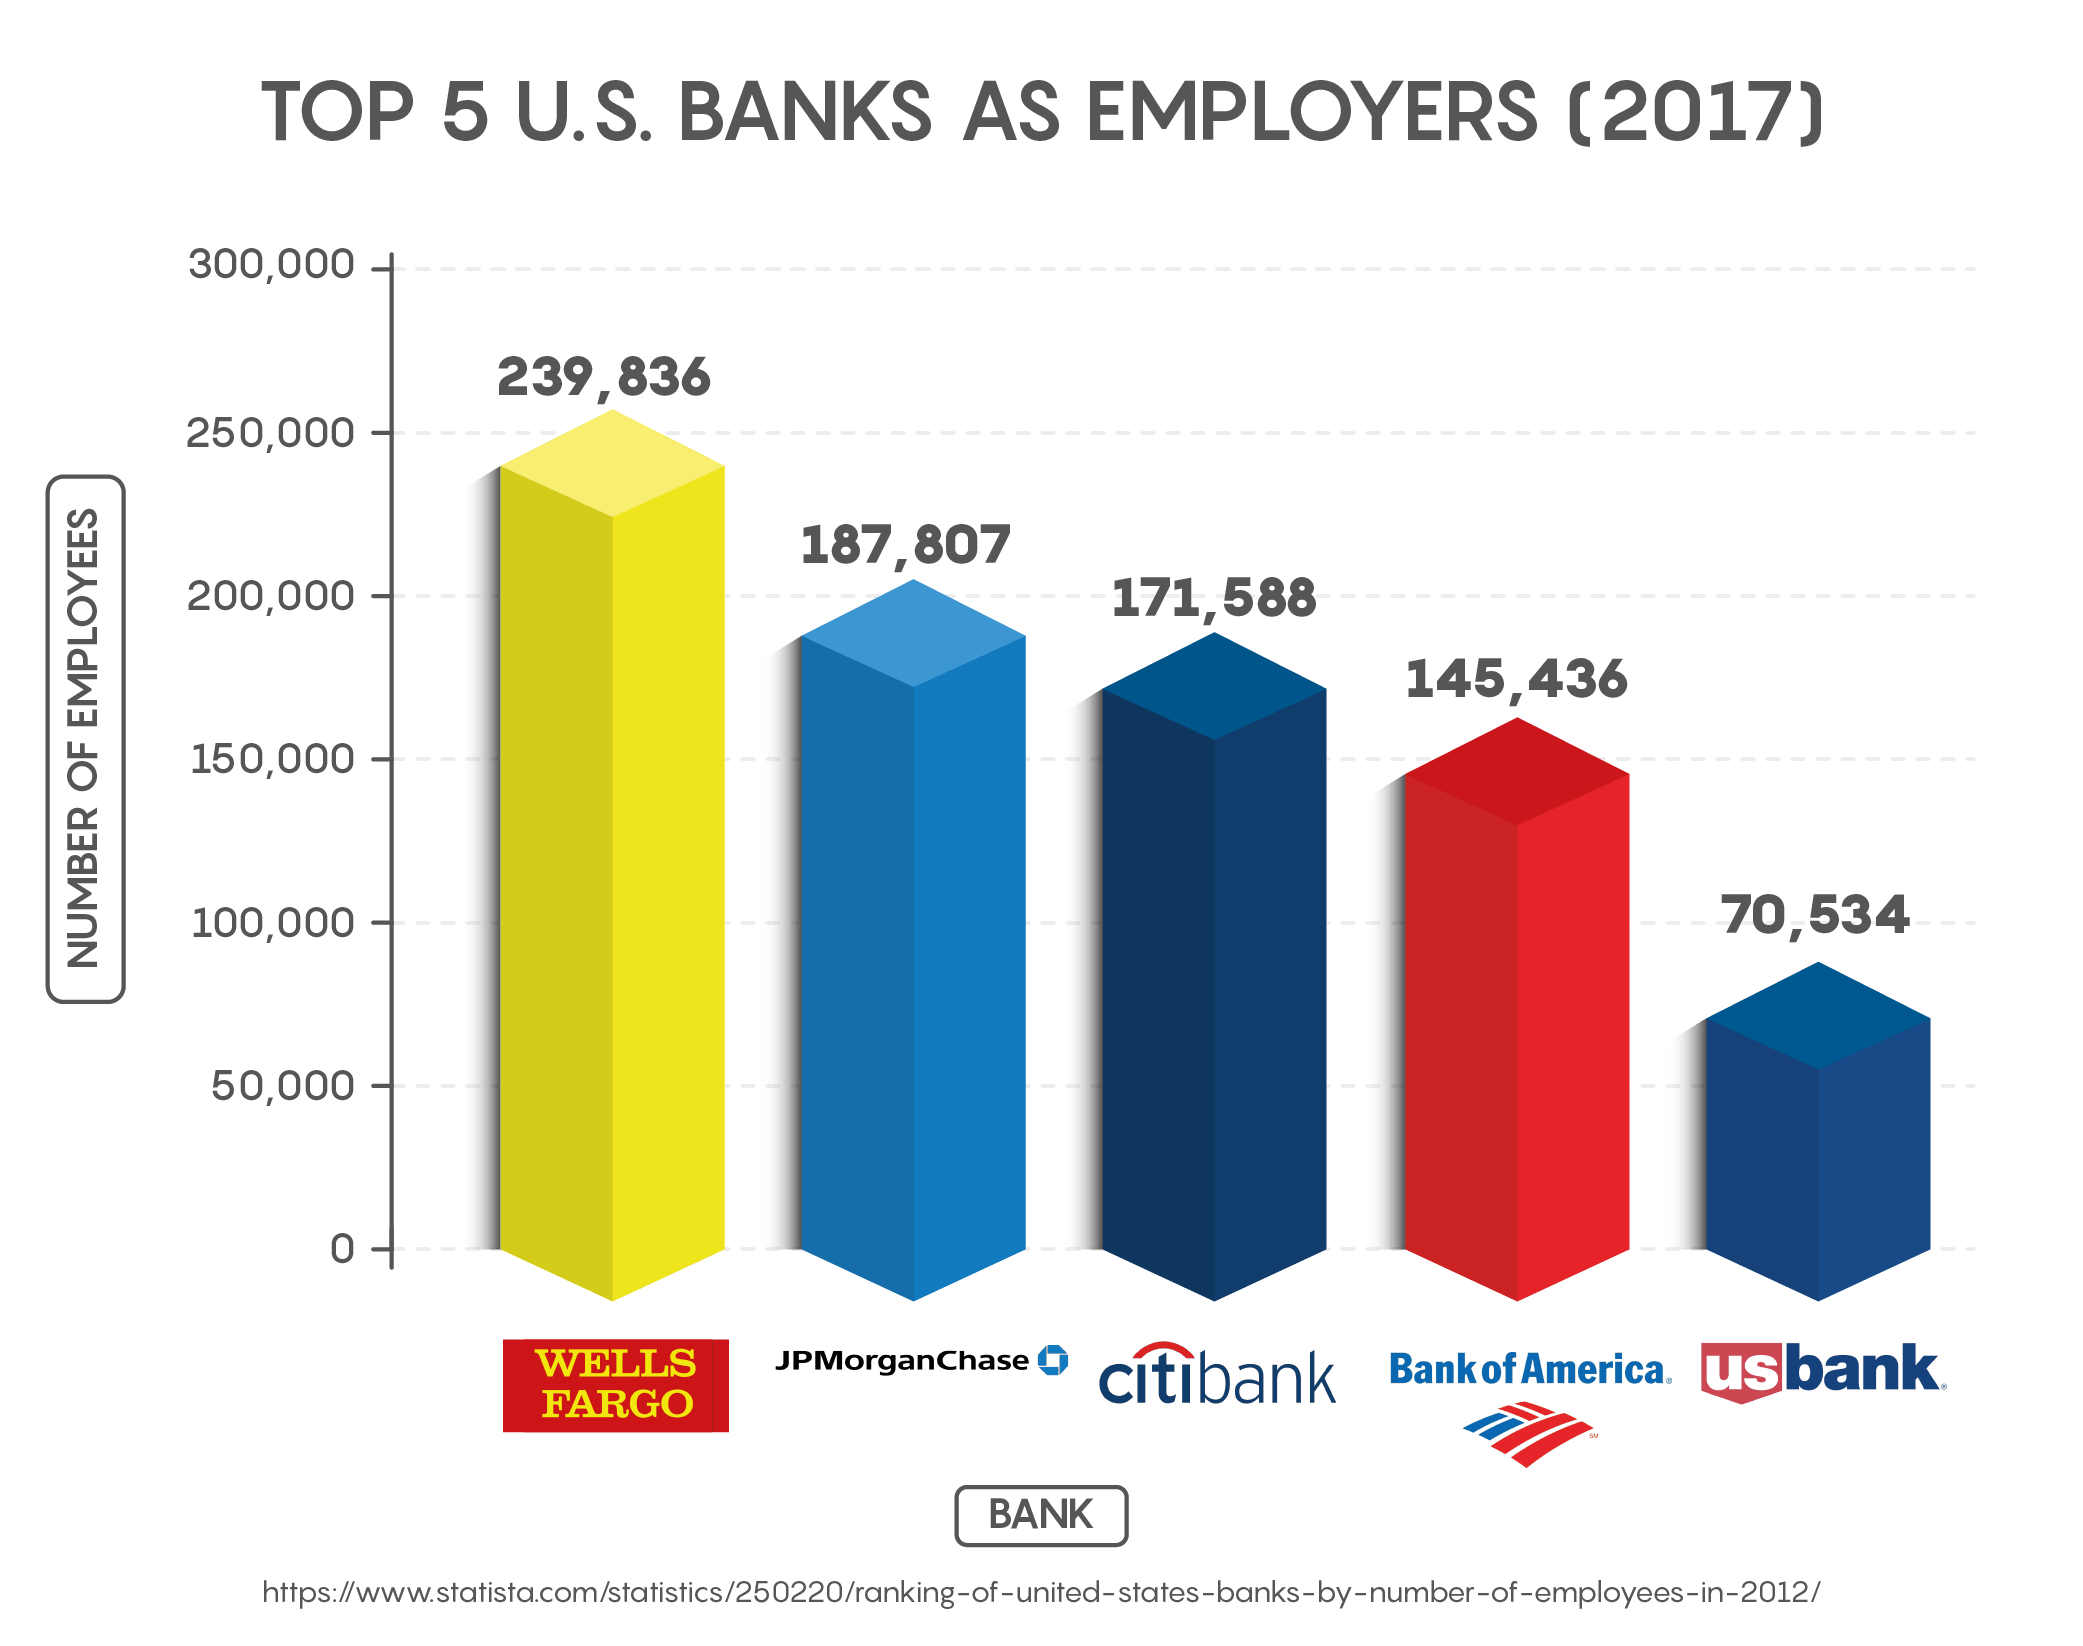 Top 5 U.S. Banks as Employers (2017)